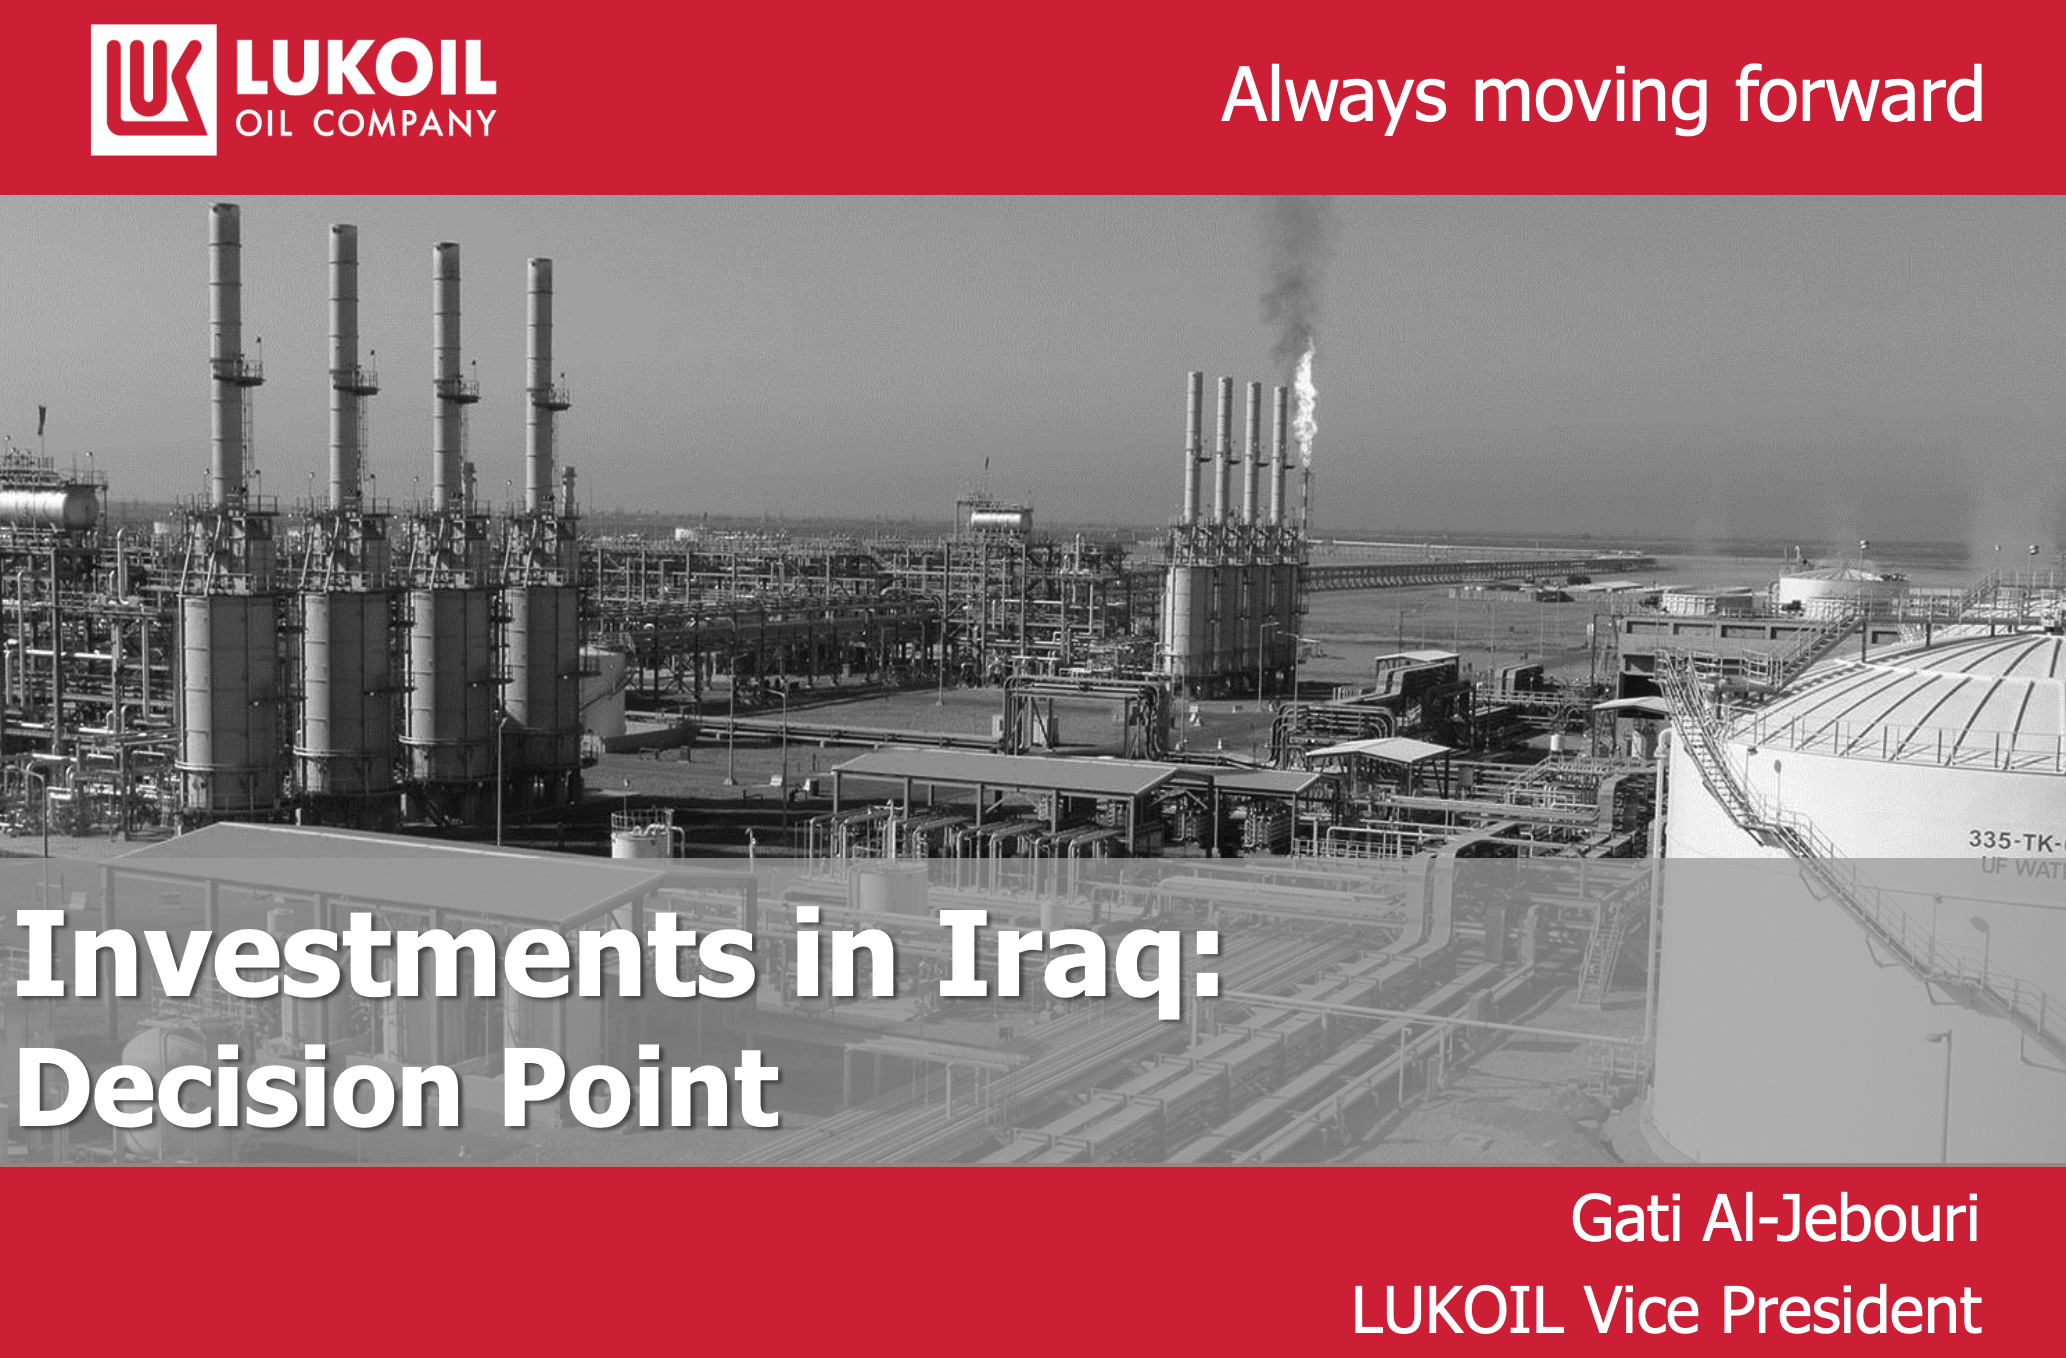 Lukoil Investments in Iraq: Decision Point | Iraq Energy Institute